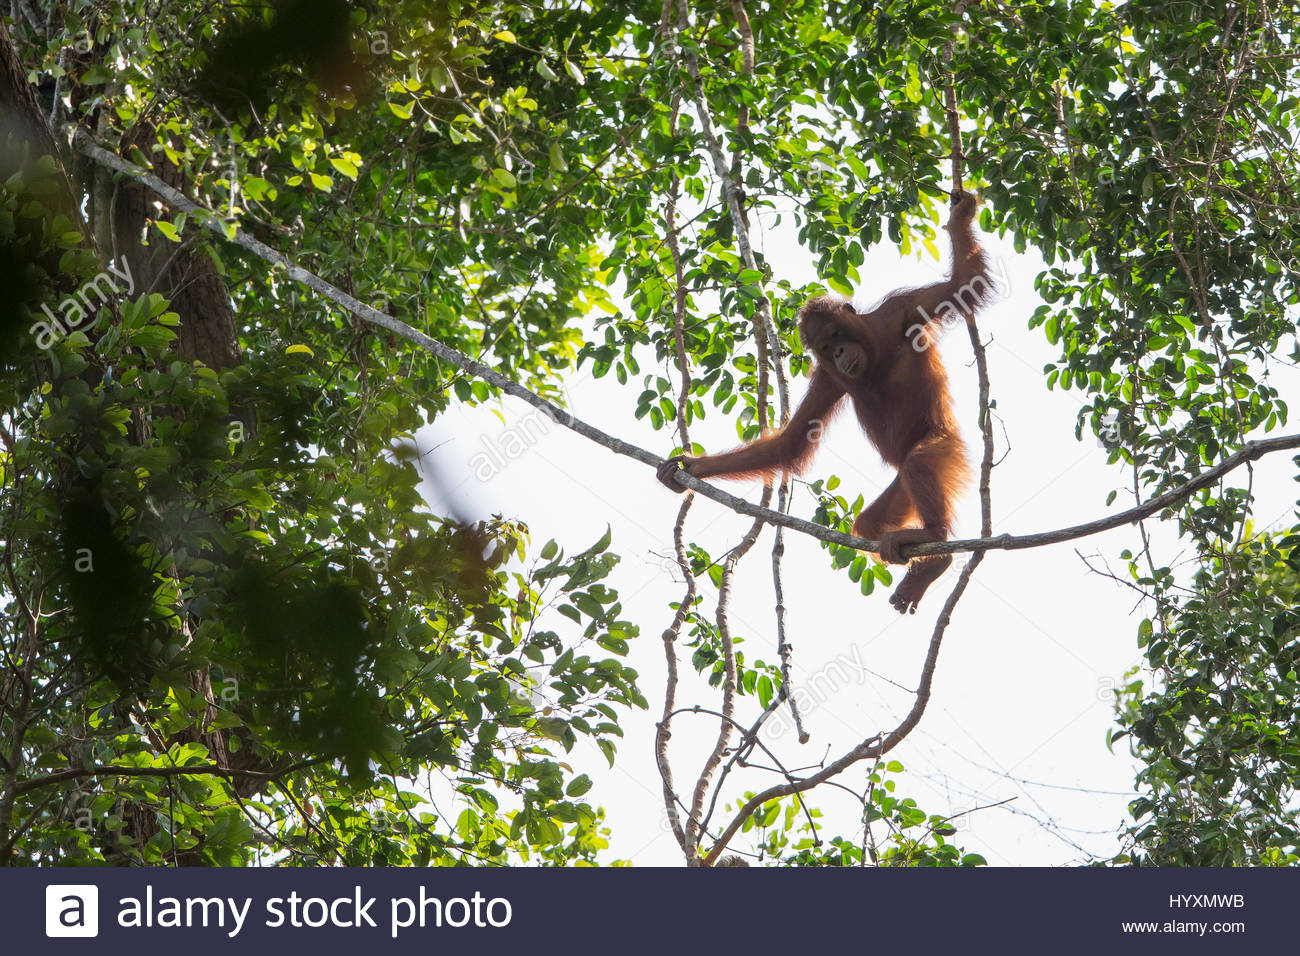 A young female Bornean orangutan swings from lianas in Gunung Palung National Park. - Stock Image